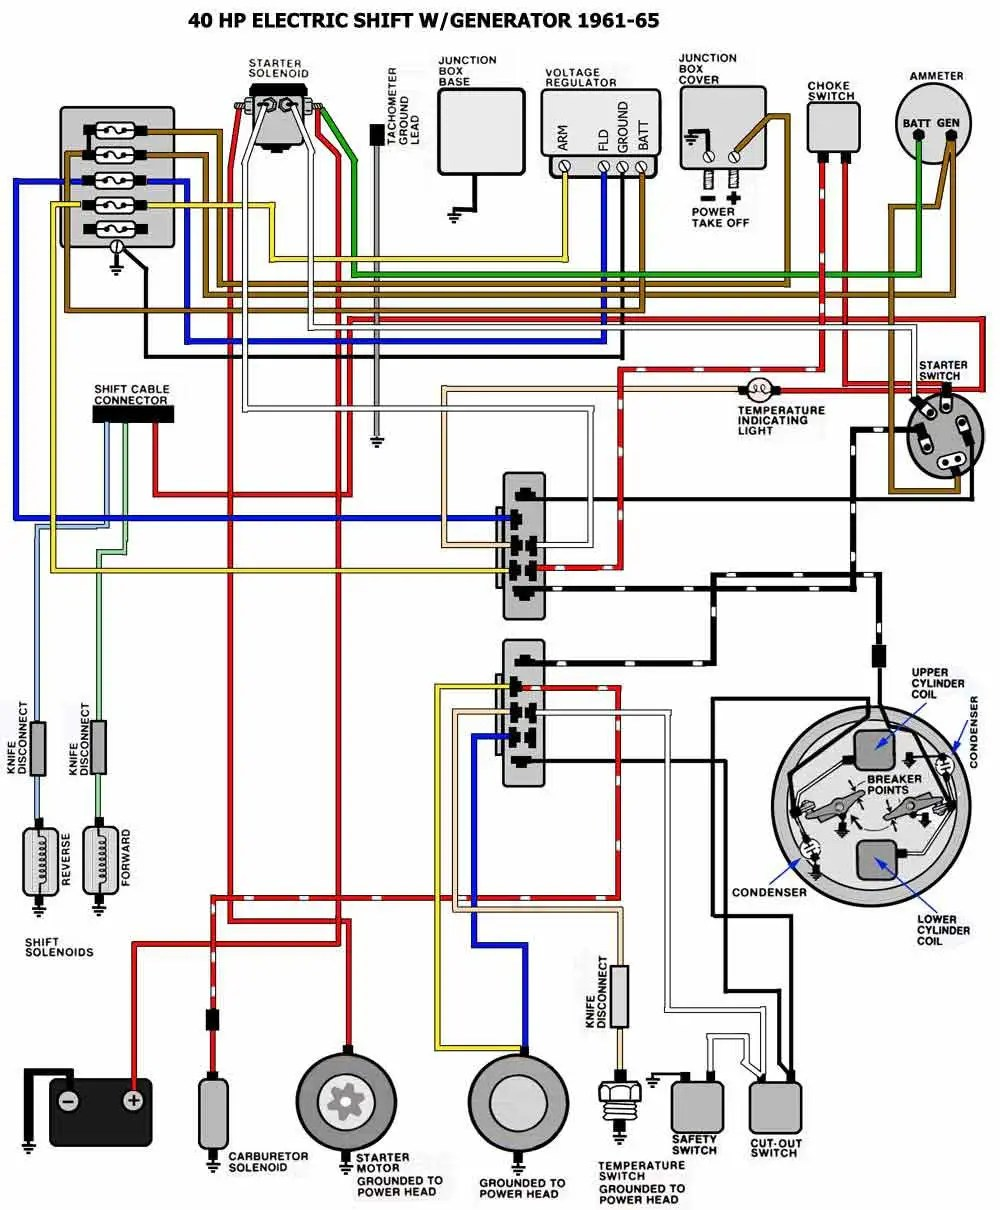 medium resolution of hp wiring diagram wiring diagram expert vanguard 16 hp wiring diagram hp wiring diagram